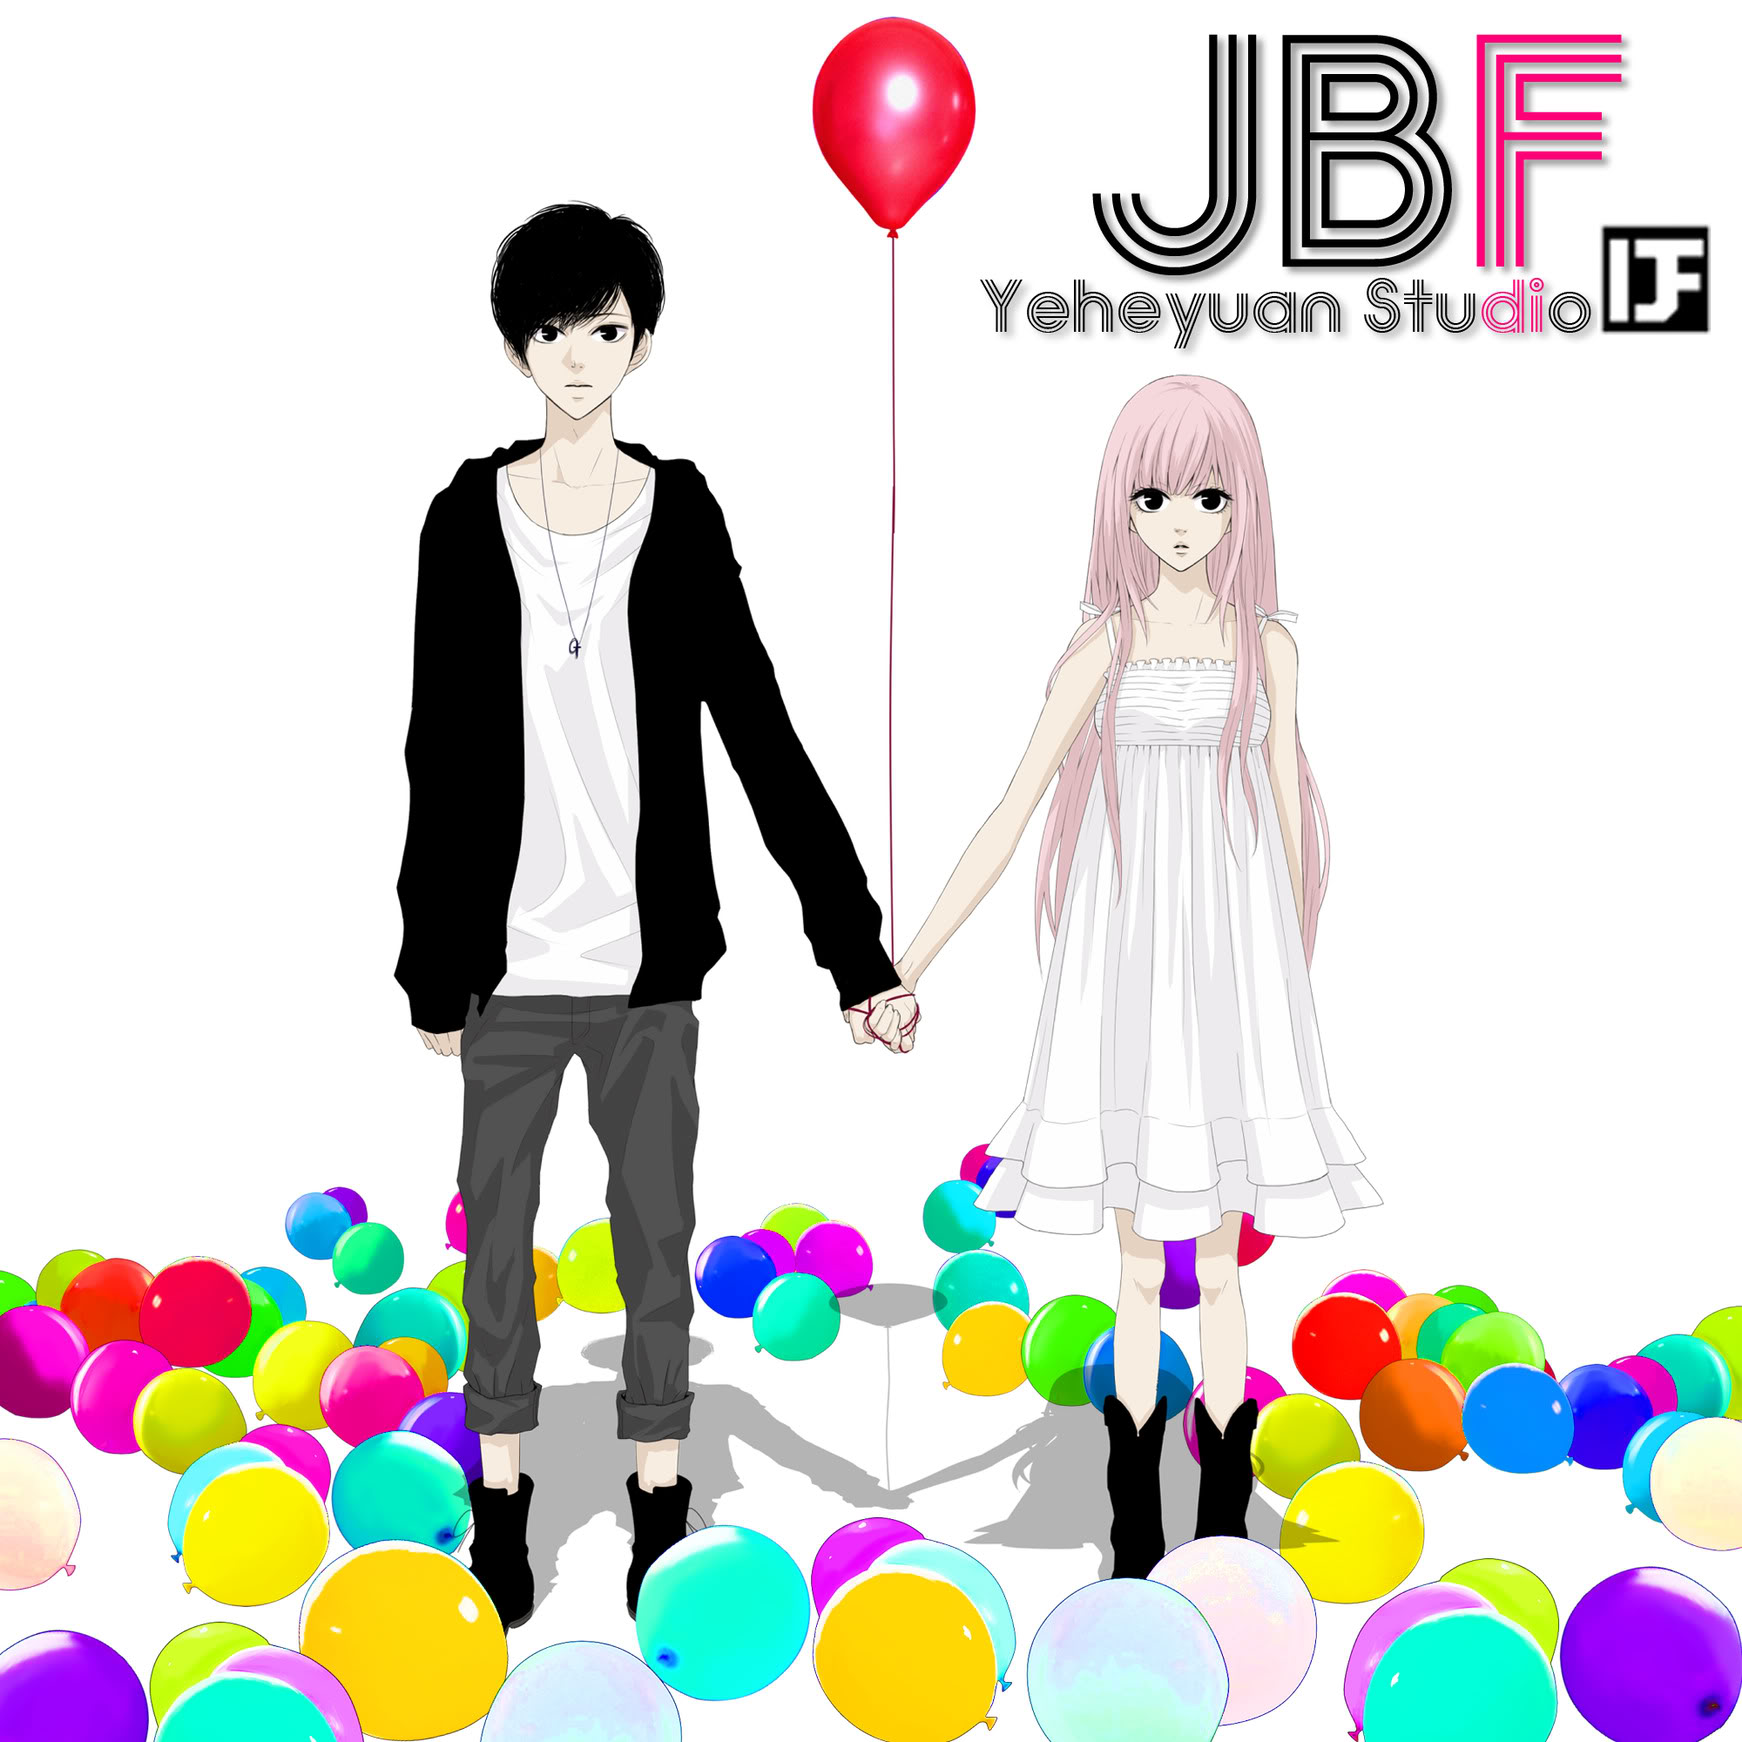 Just Be Friends | Vocaloid Wiki | FANDOM powered by Wikia